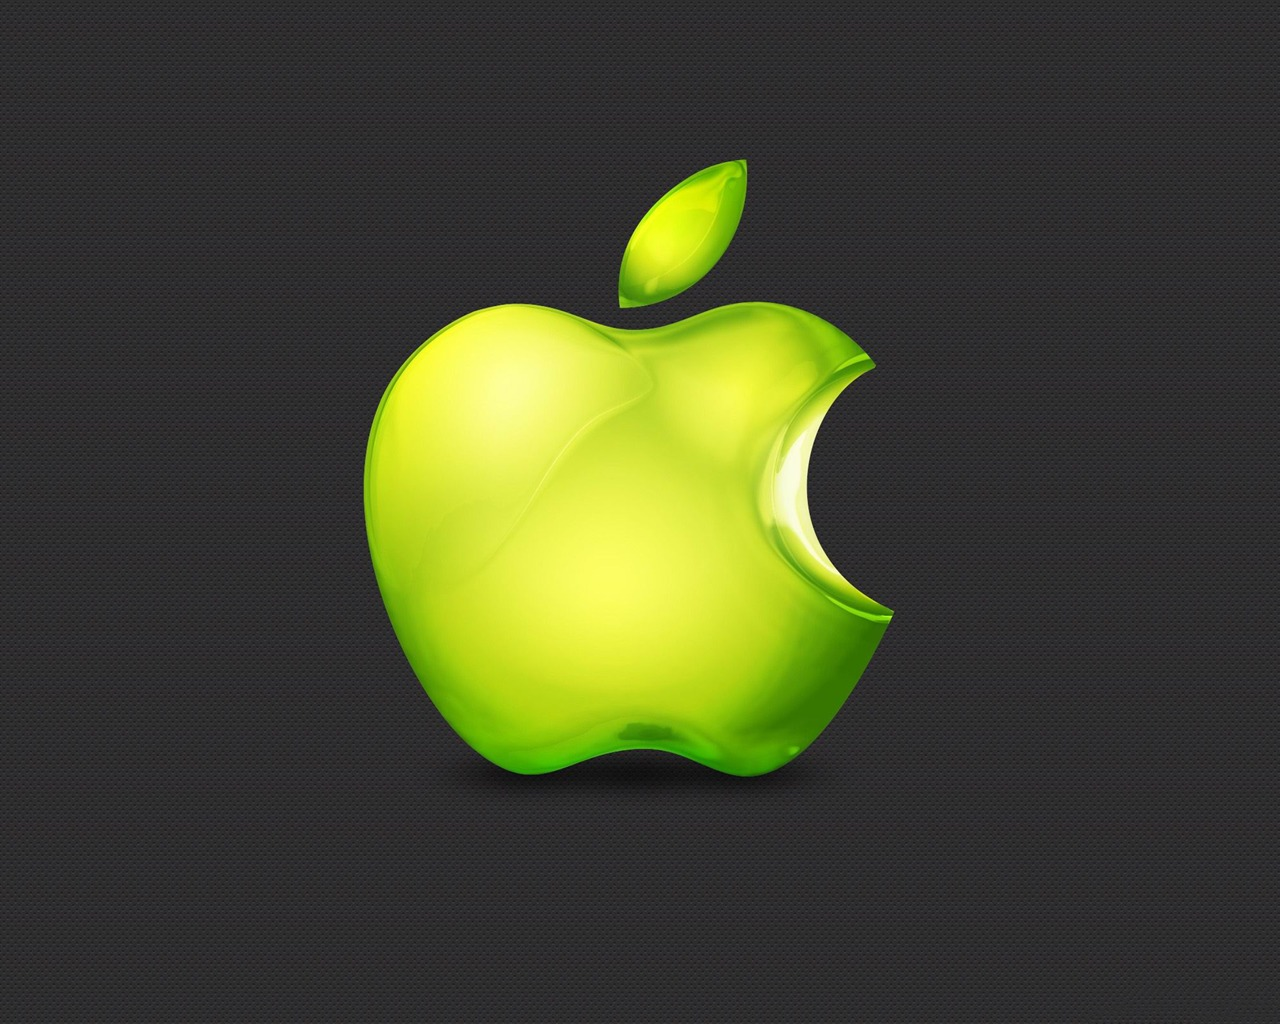 Green Apple Logo Apple Mac Theme Desktop Picture Preview